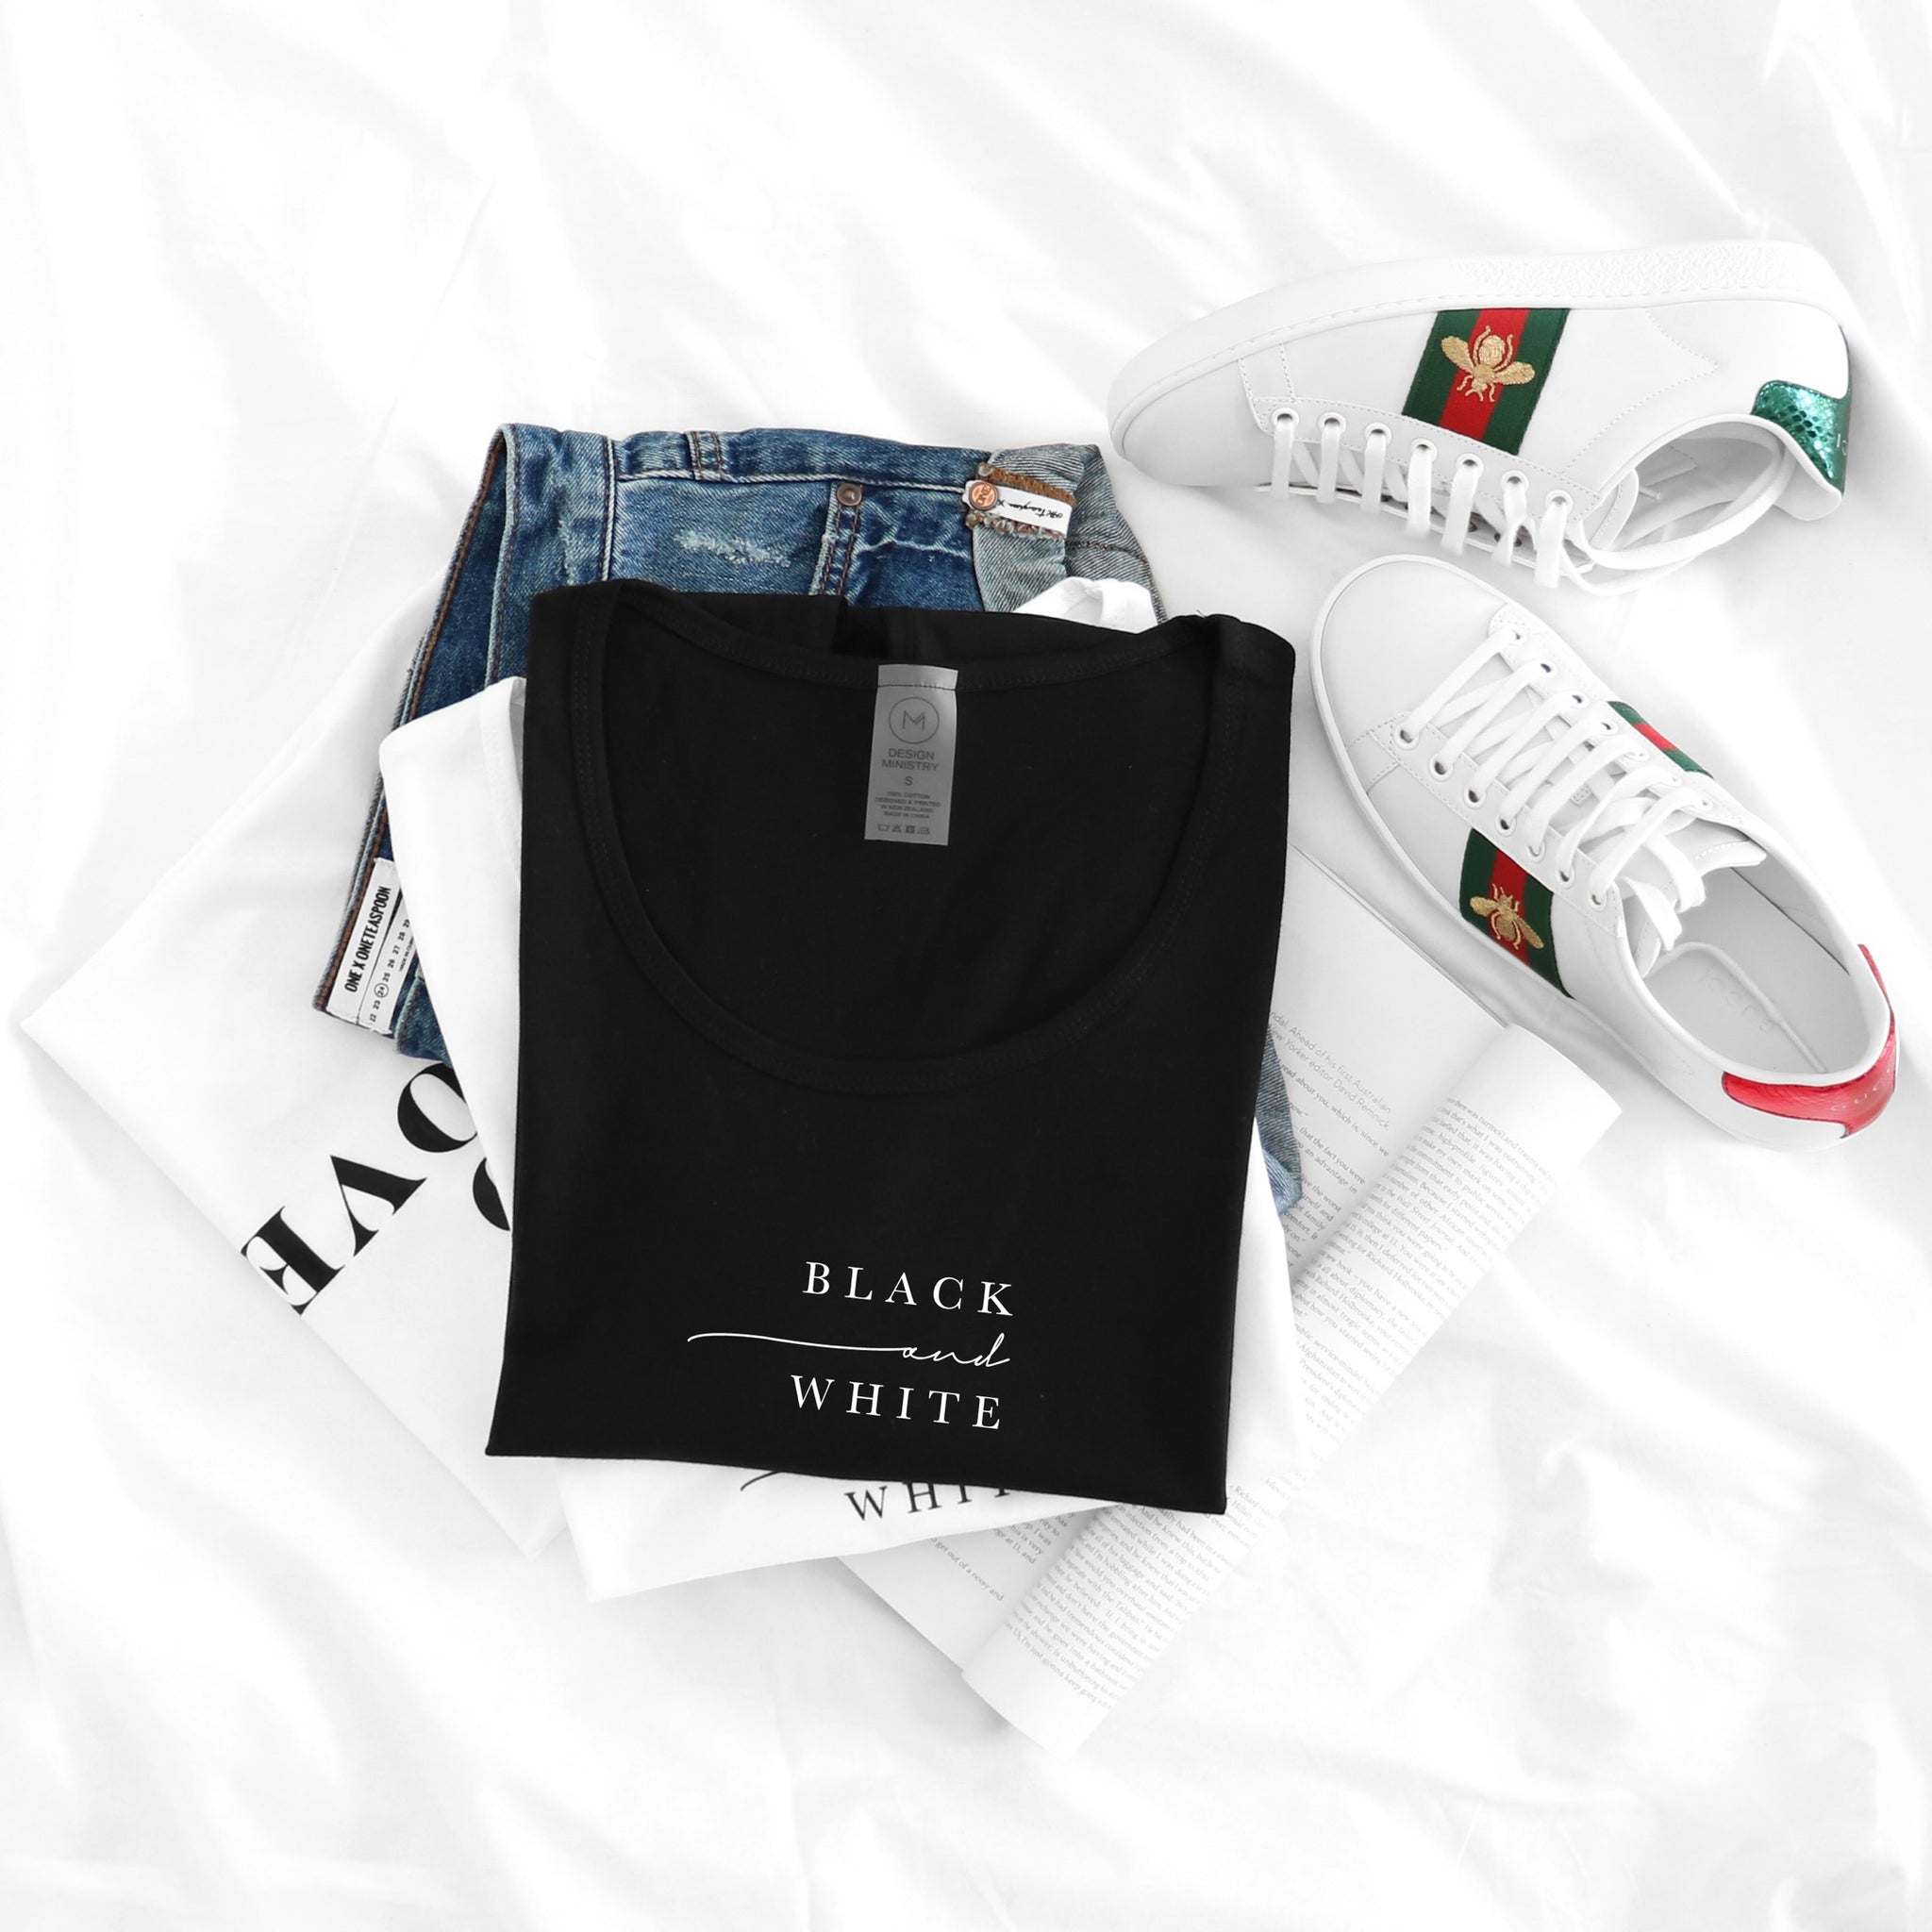 Gucci shoes and black t-shirt with text by Design Ministry